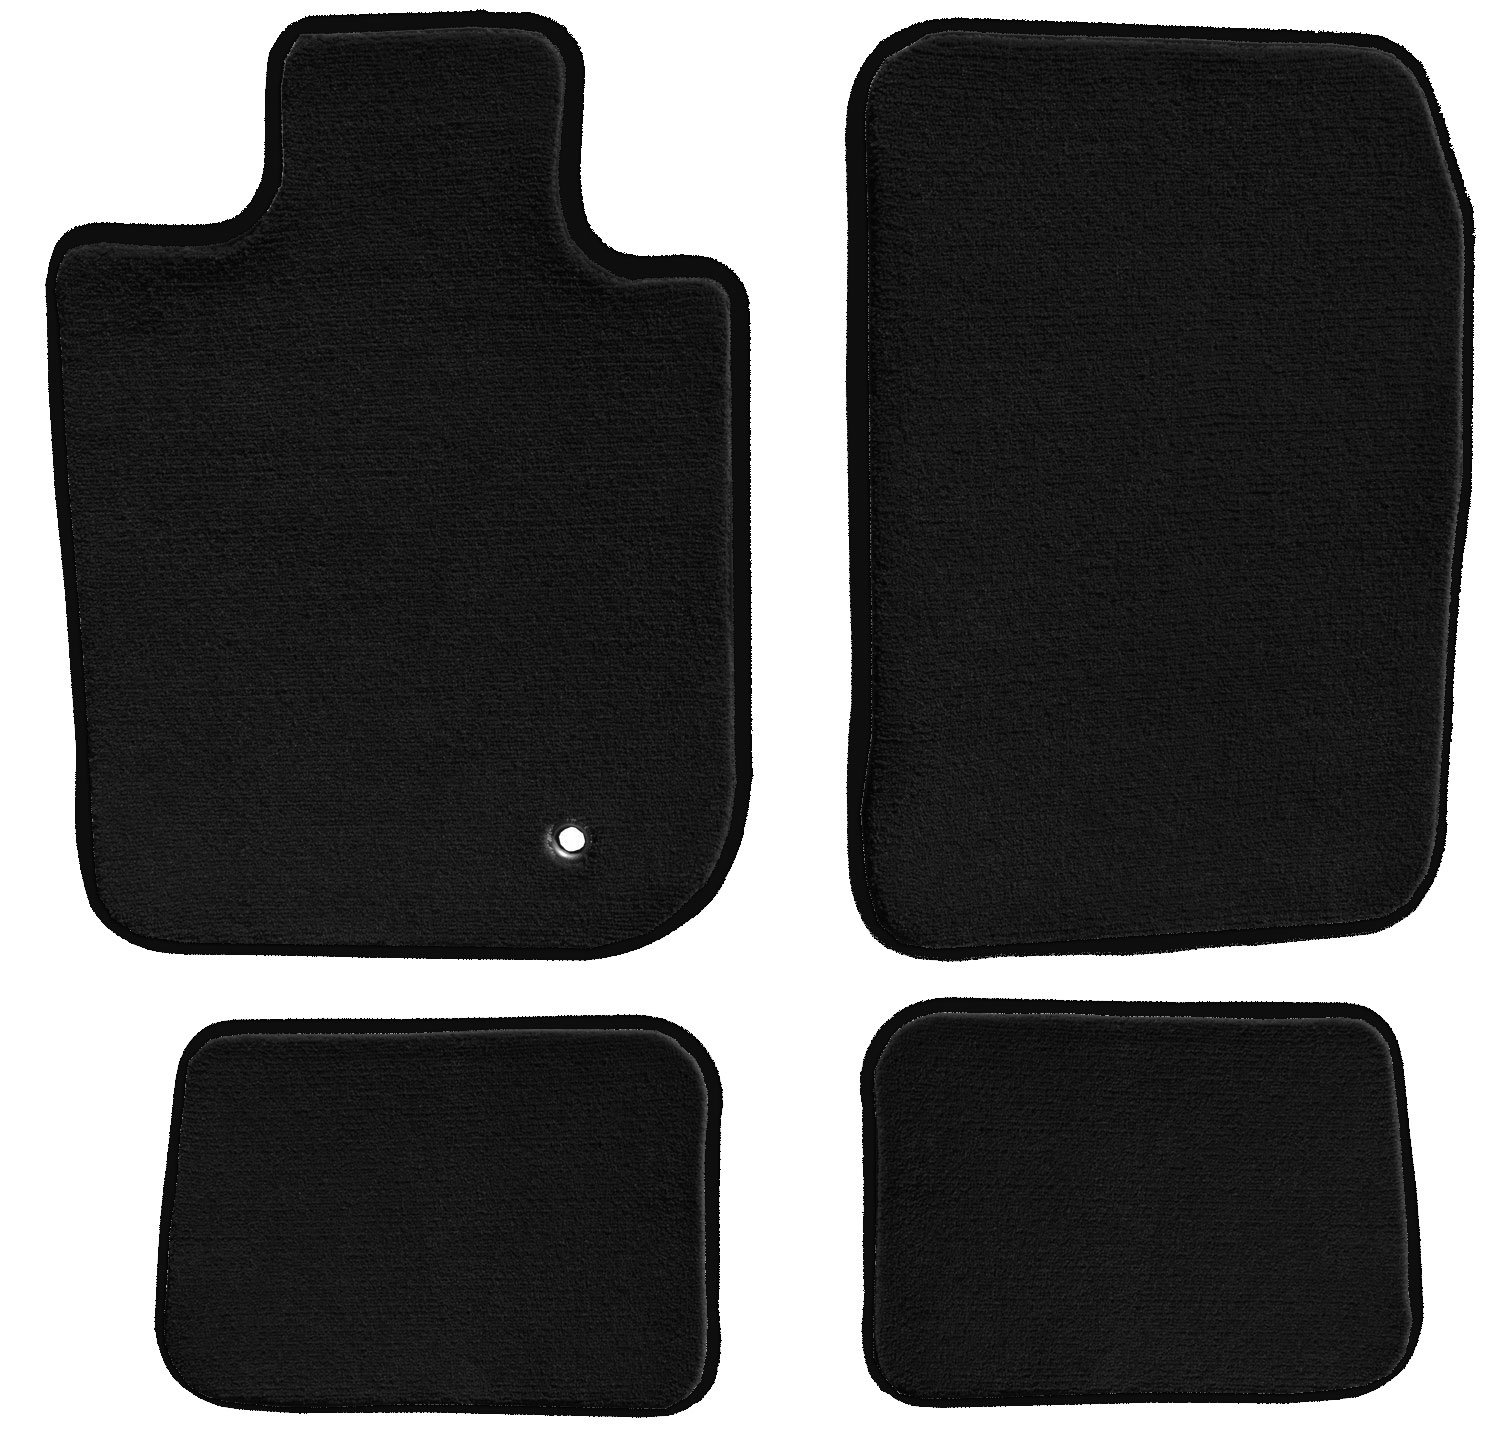 2003 2004 GGBAILEY D4268A-S1A-BK-LP Custom Fit Car Mats for 2002 Passenger /& Rear Floor 2006 Chevrolet Avalanche Black Loop Driver 2005